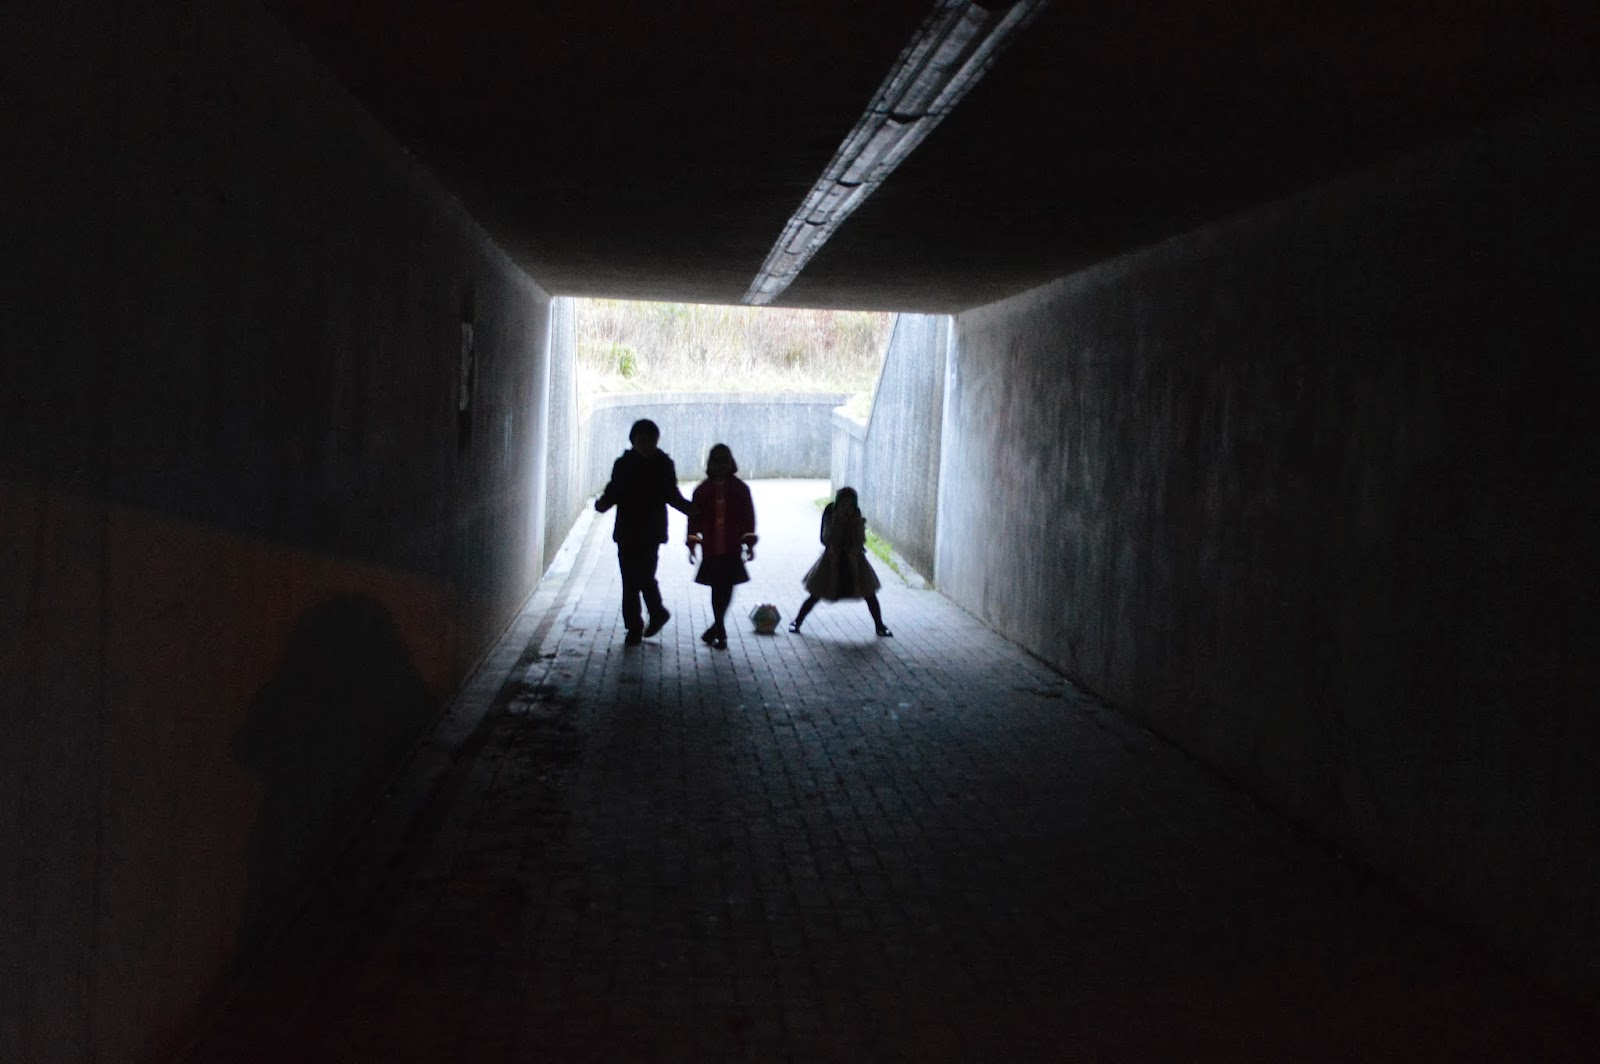 Children tunnel dark light silhouettes